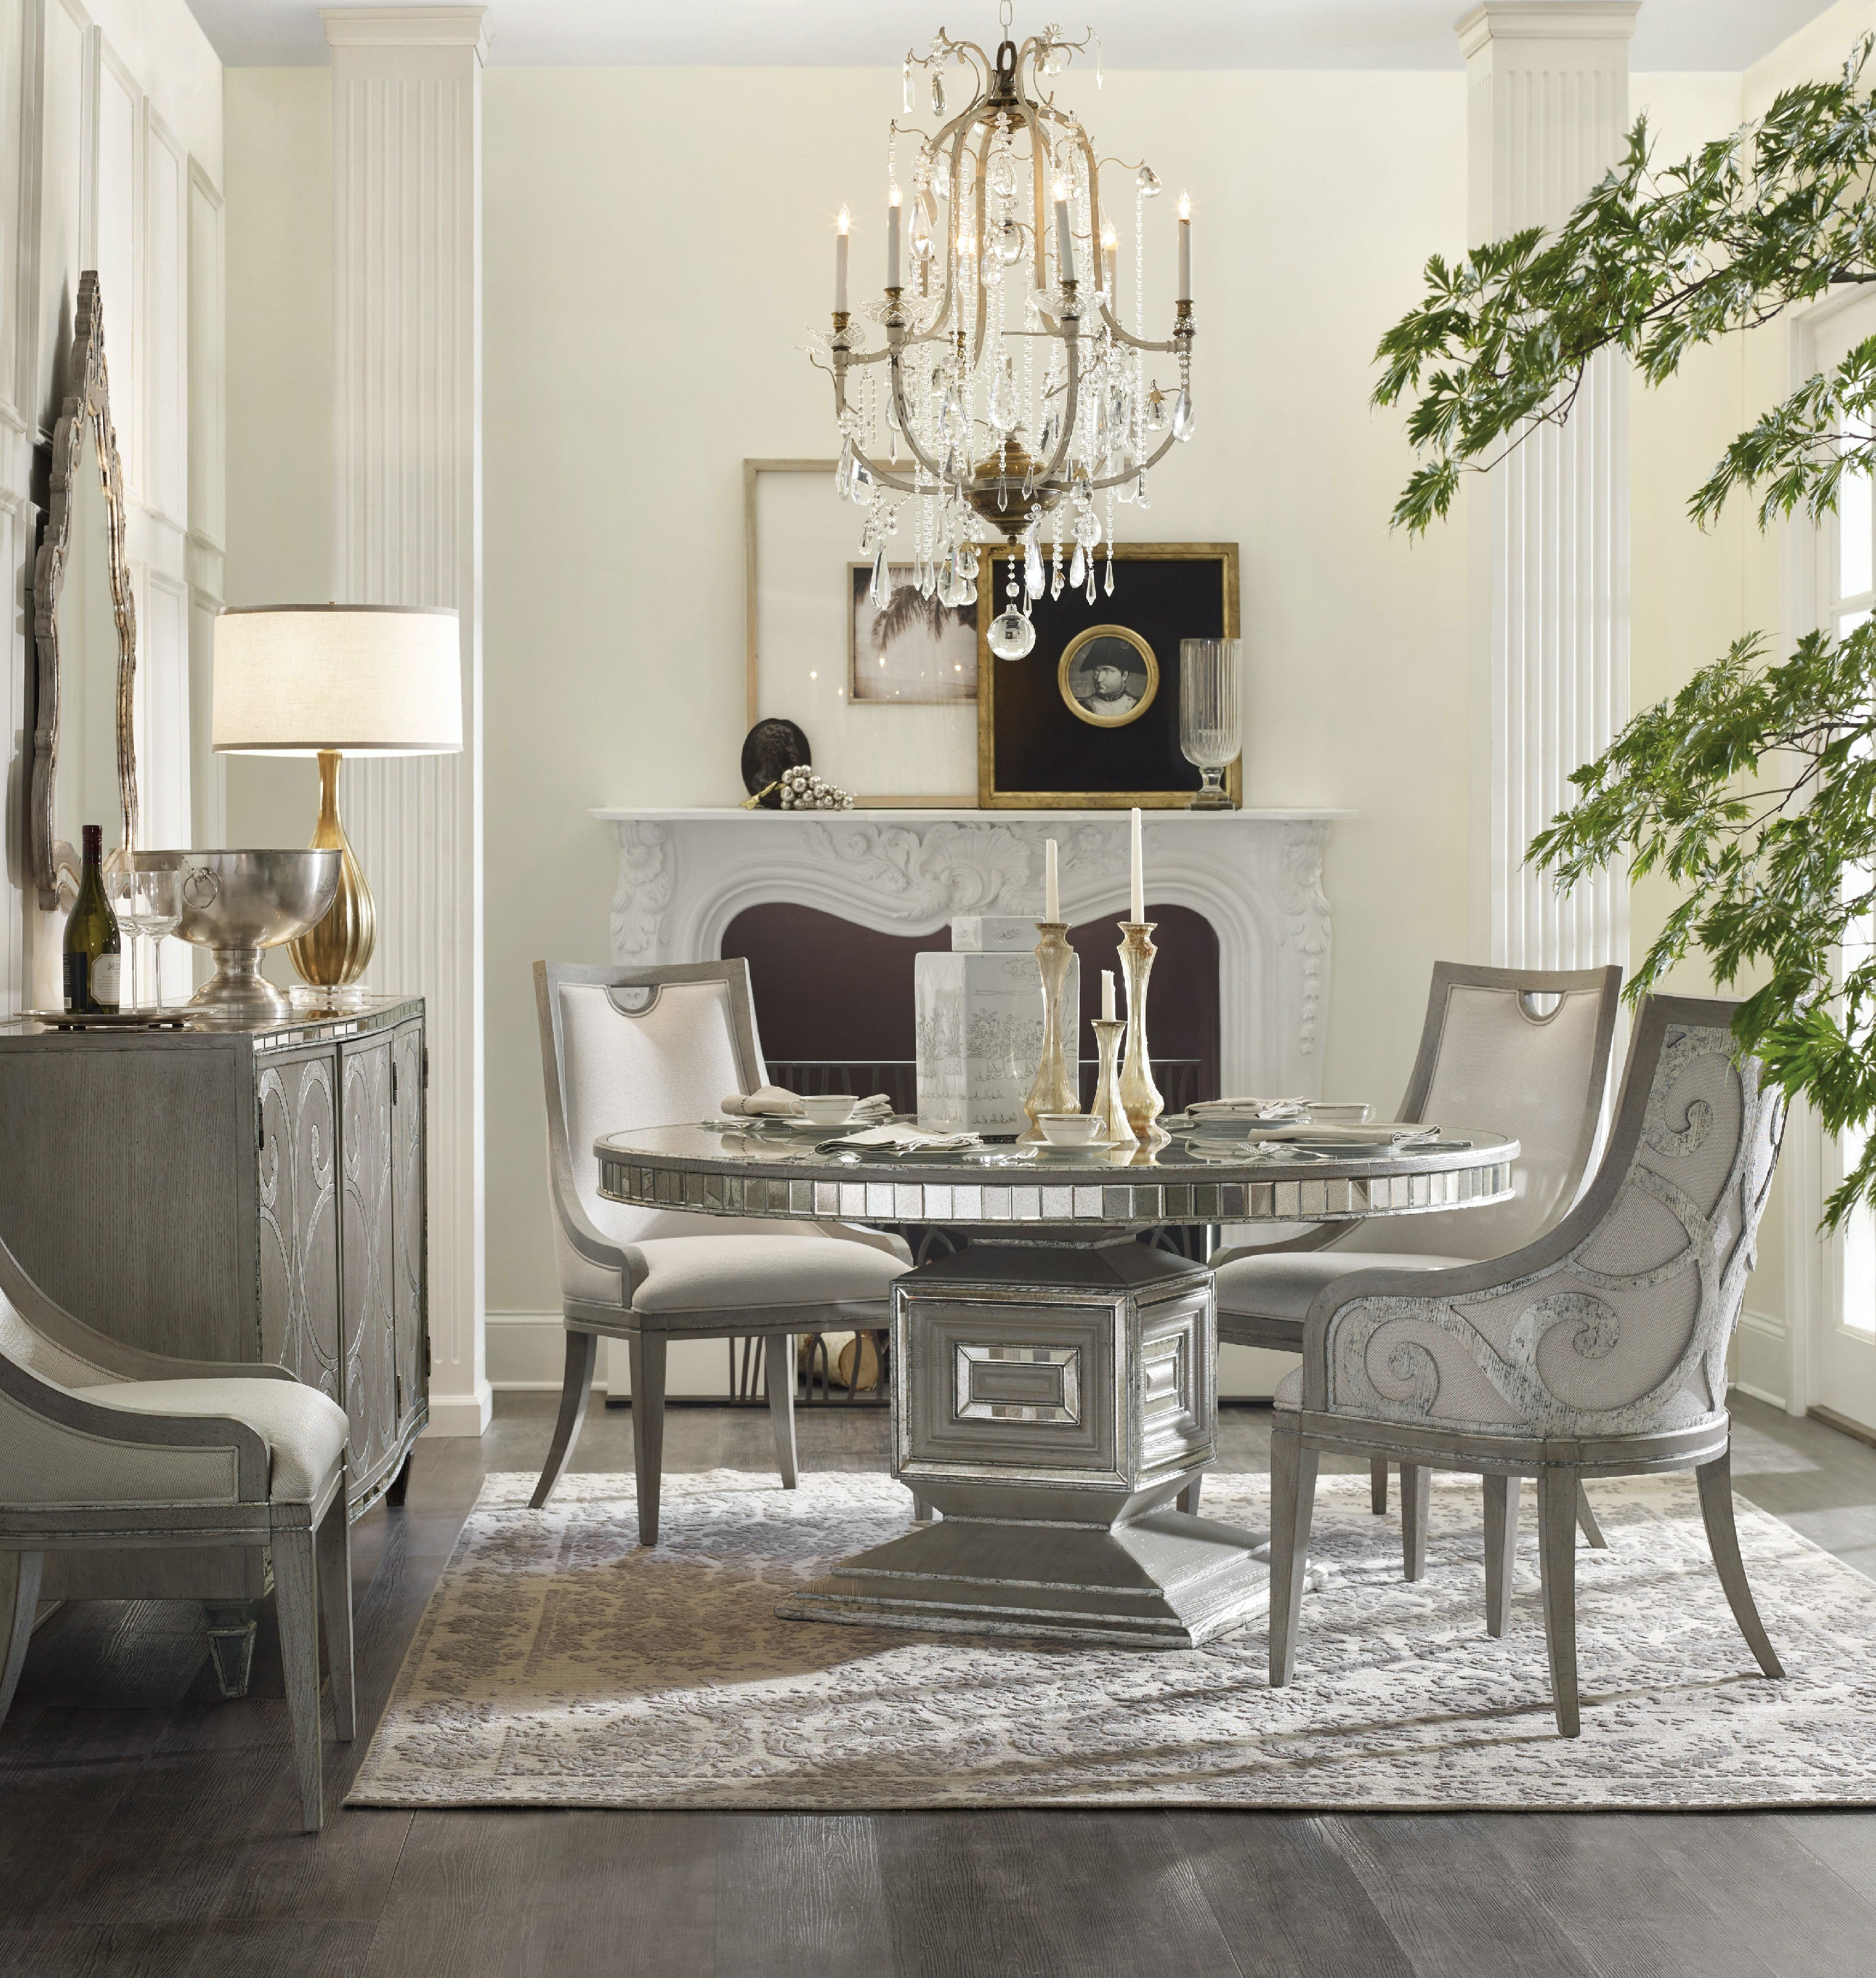 Hooker Furniture Dining Room Sanctuary Round Dining Table 5603